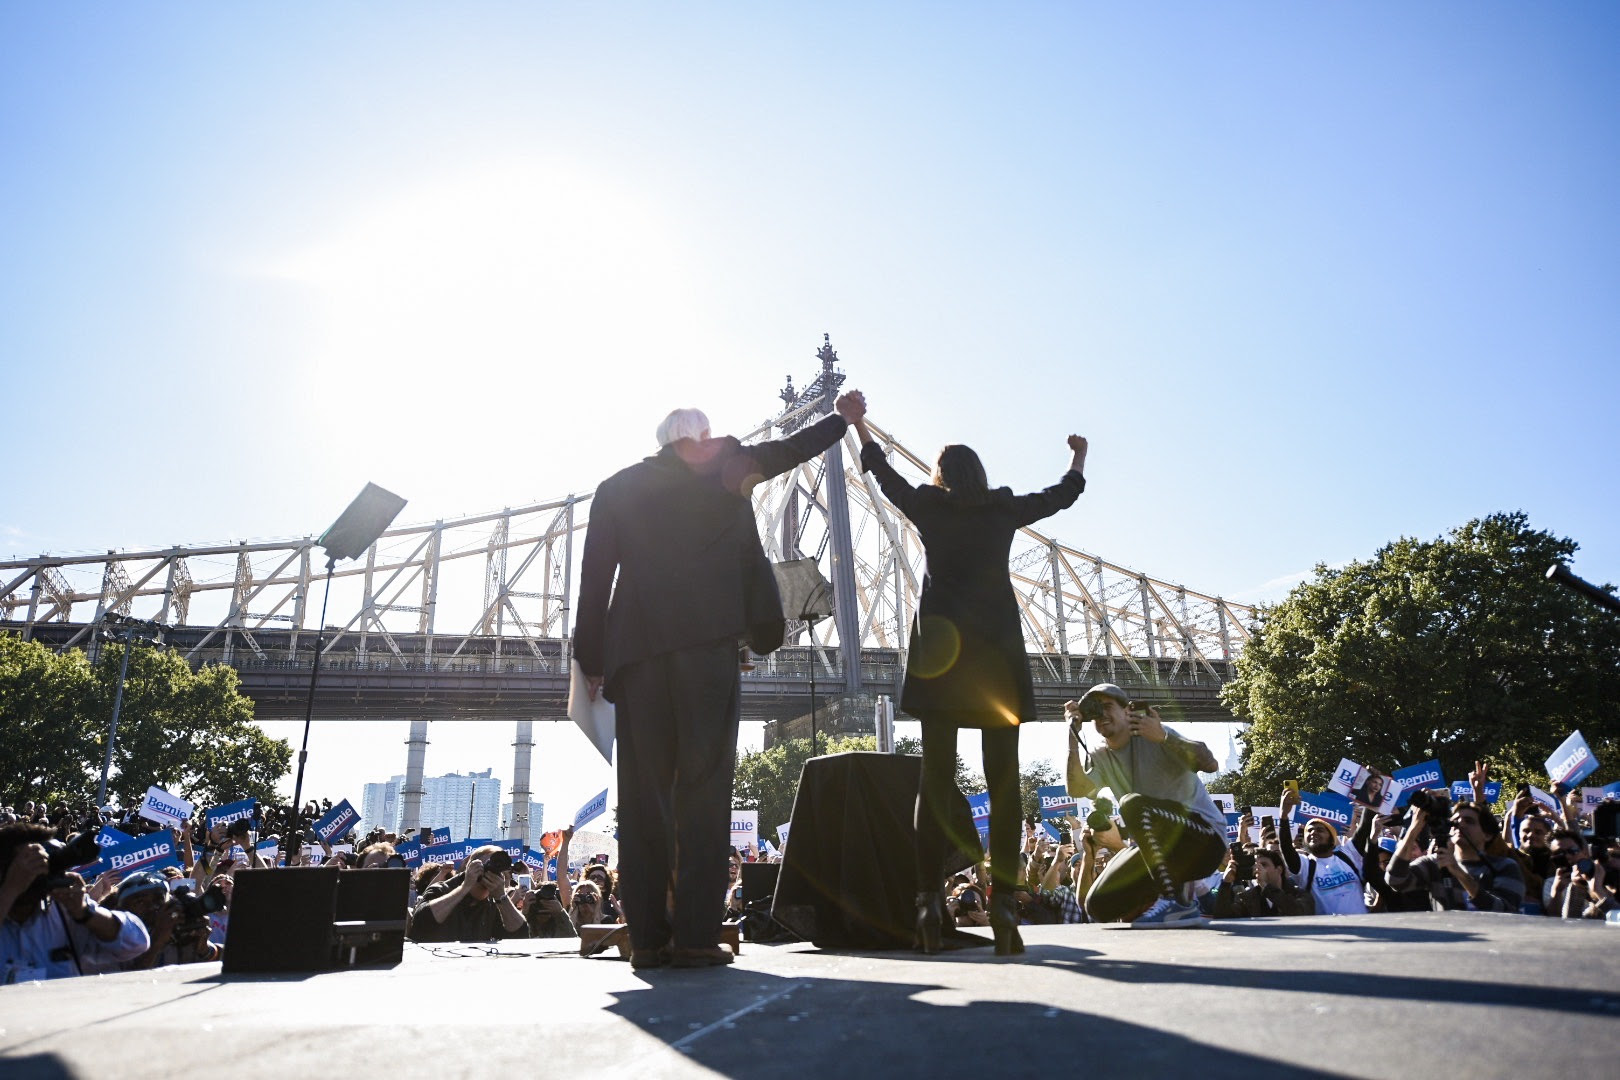 Bernie and Rep. Ocasio-Cortez at our Bernie's Back rally in NYC